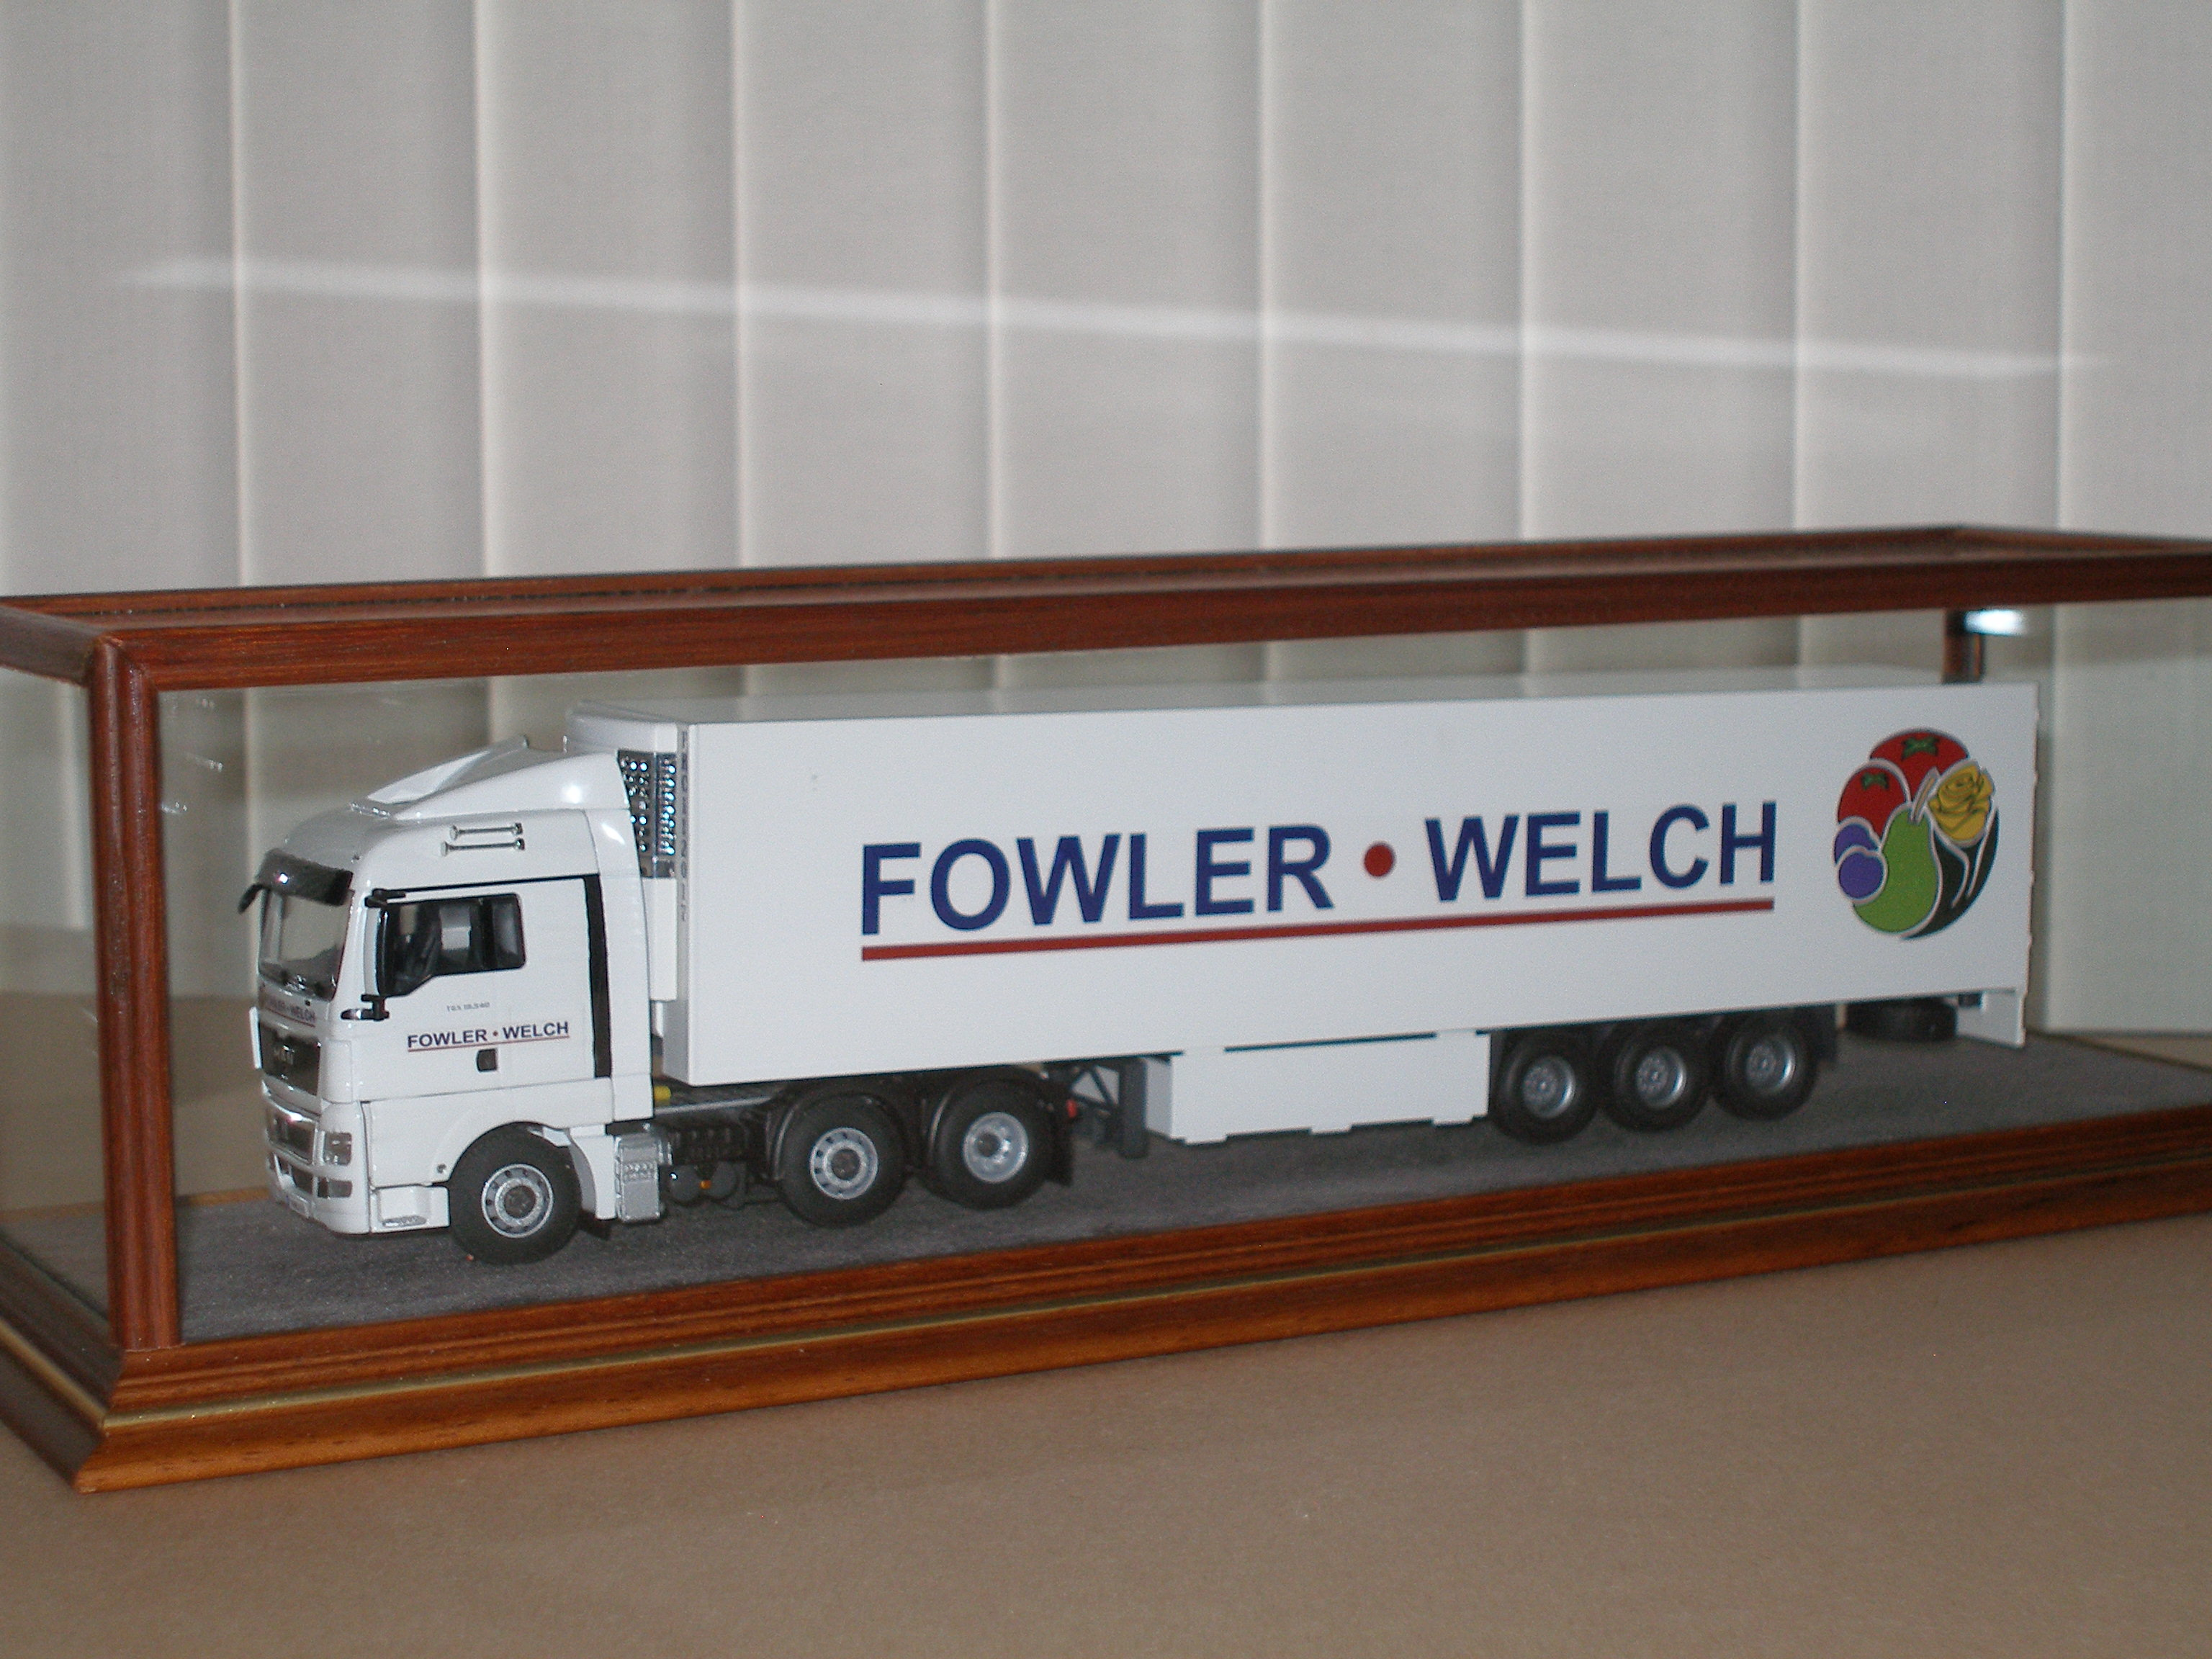 Display case for articulated lorry model